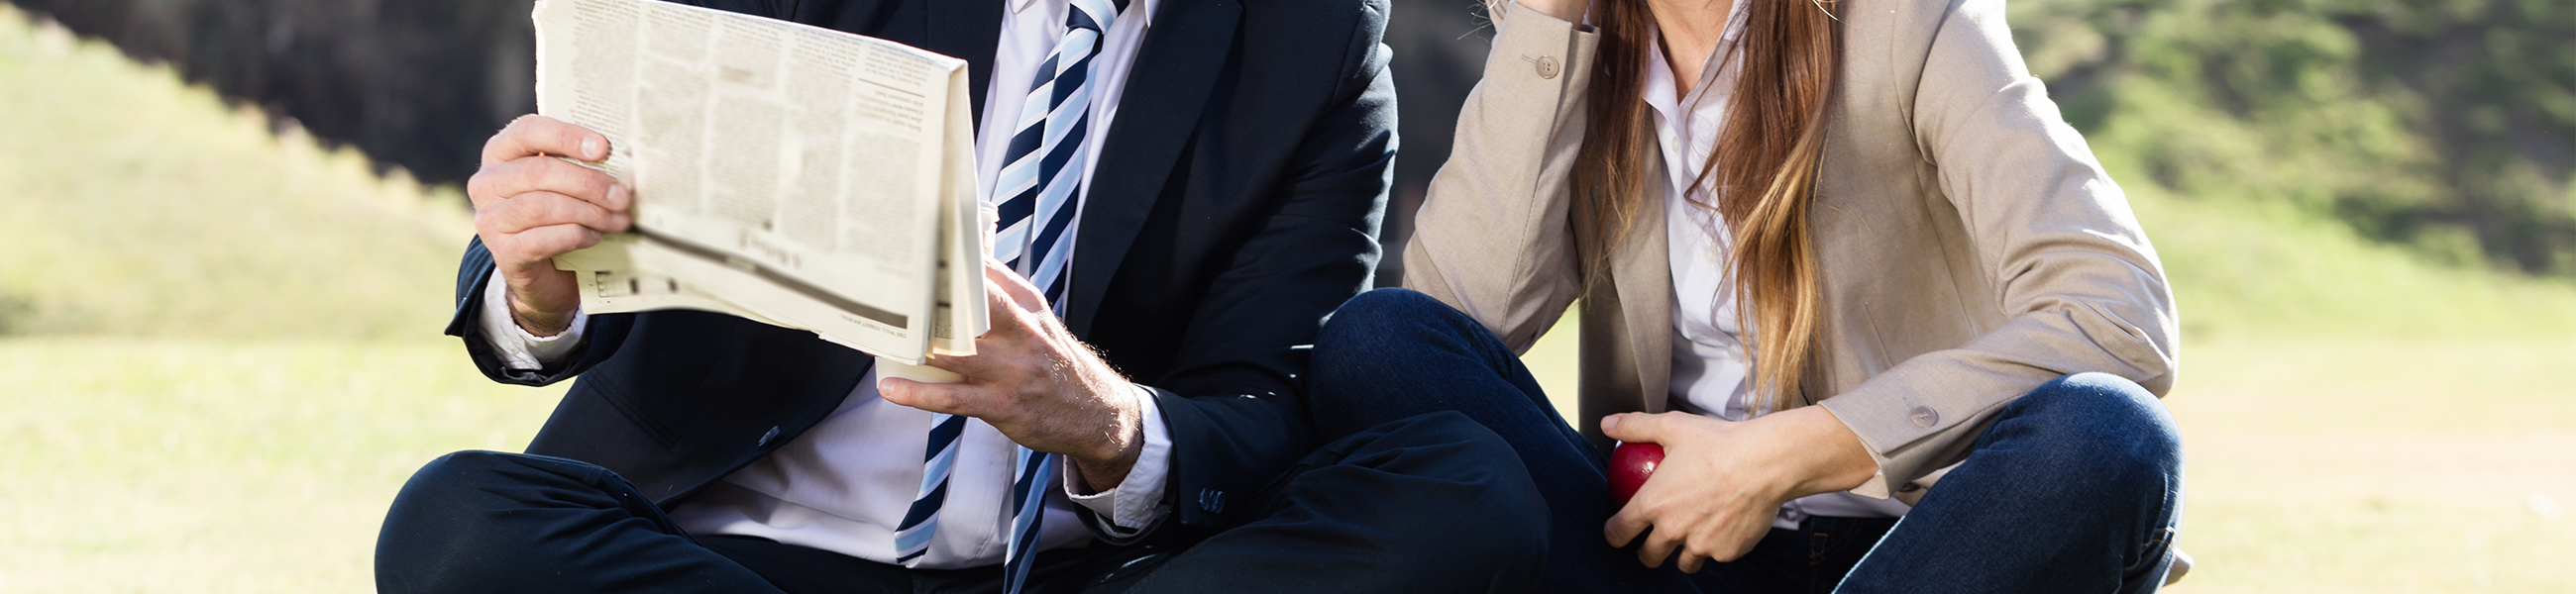 A close-up shot of two people sitting outside on the grass. One is reading a newspaper and the other one is holding an apple. They are only depicted from the shoulders down.